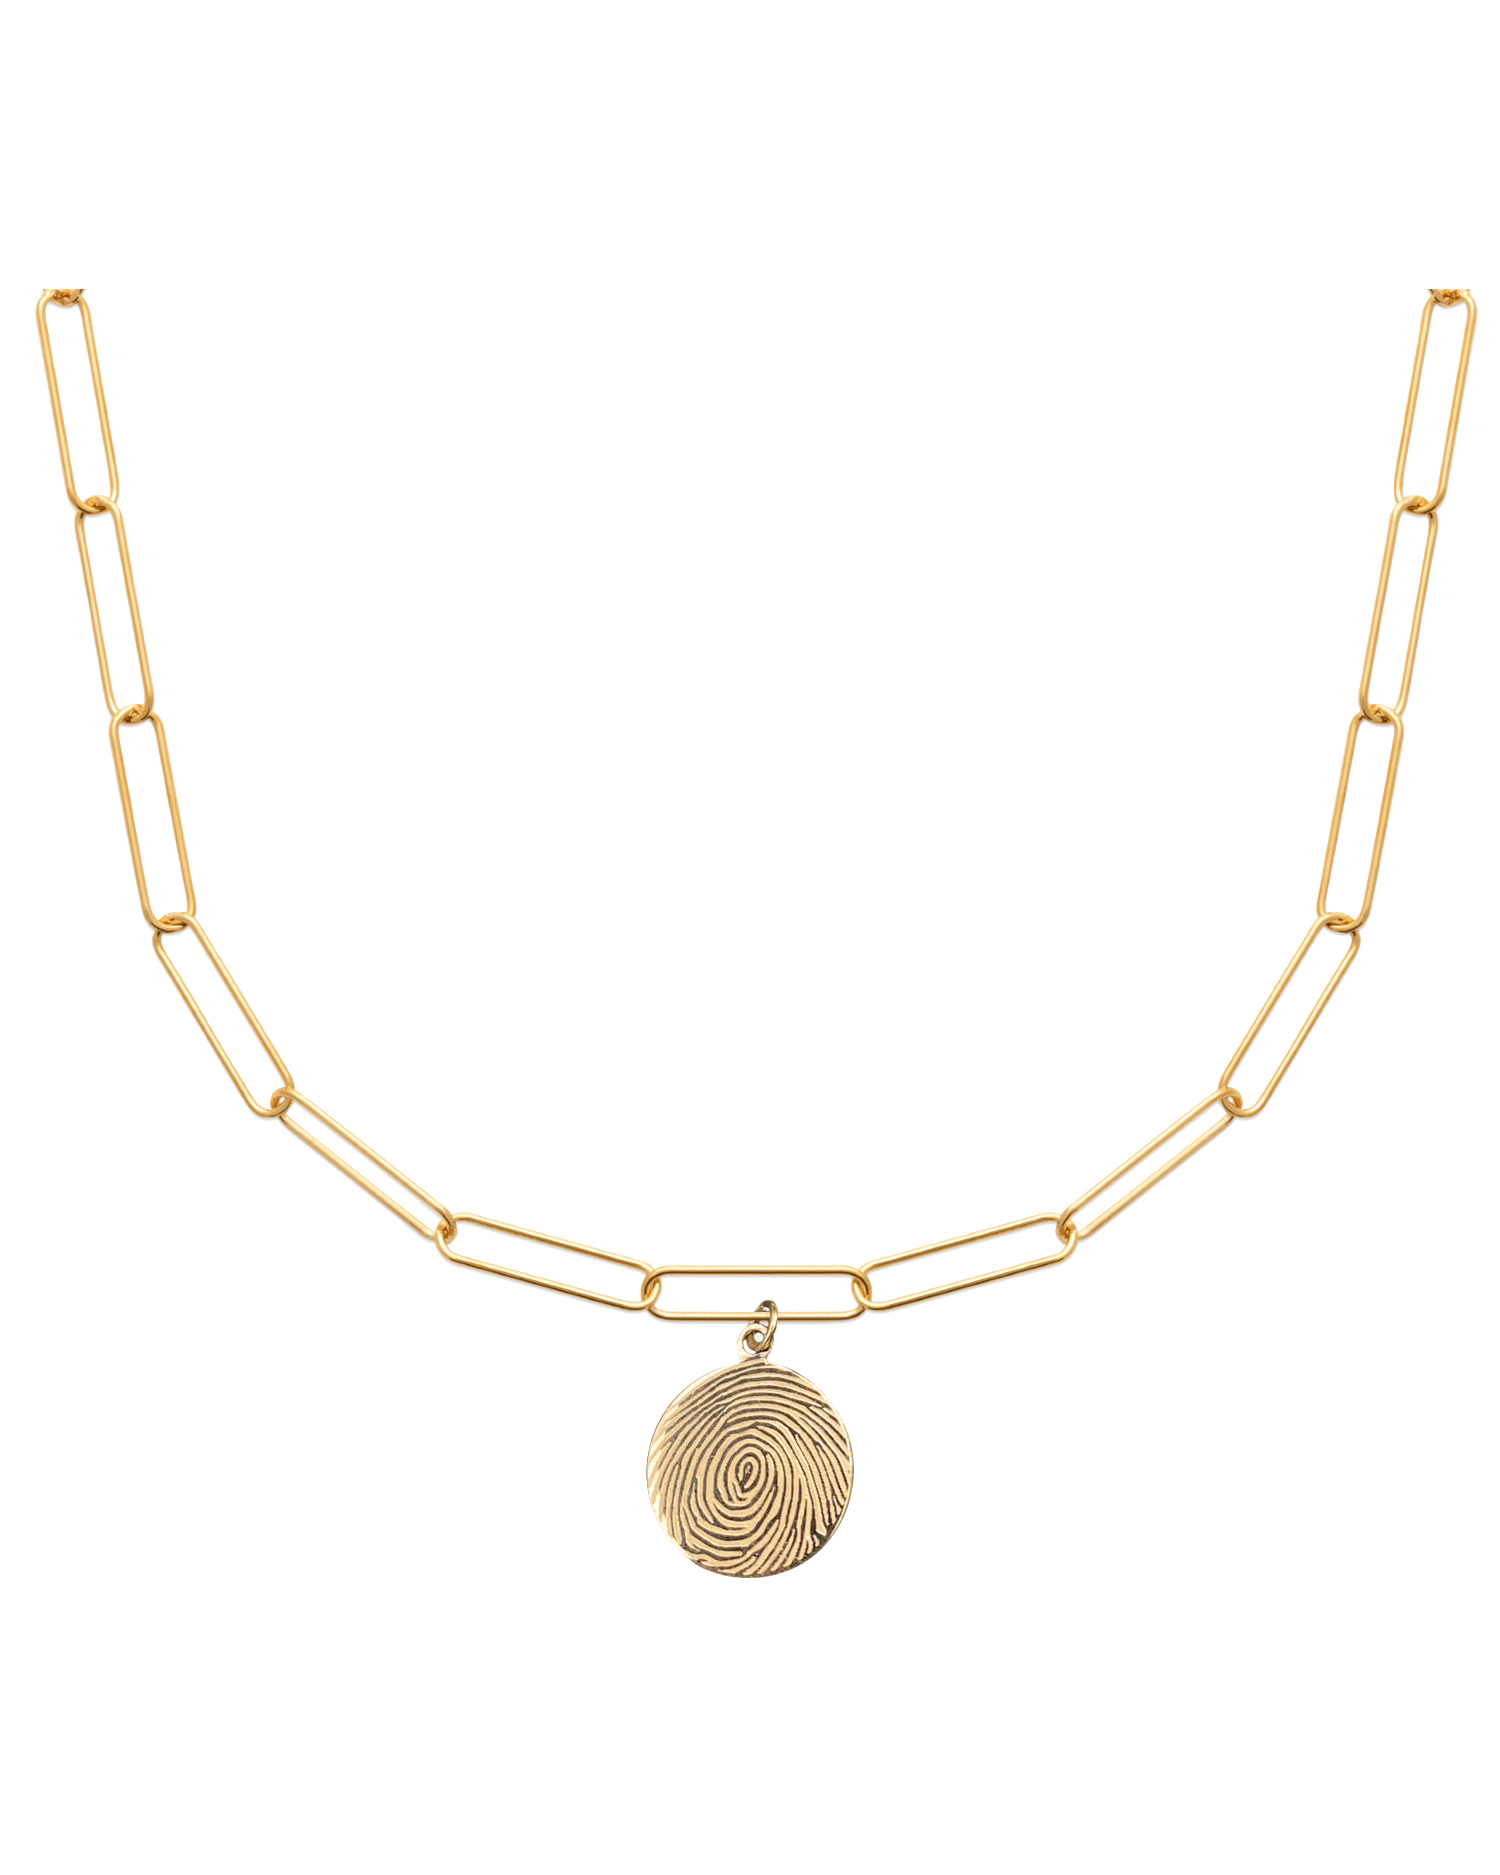 Choker Necklace, Gold-plated